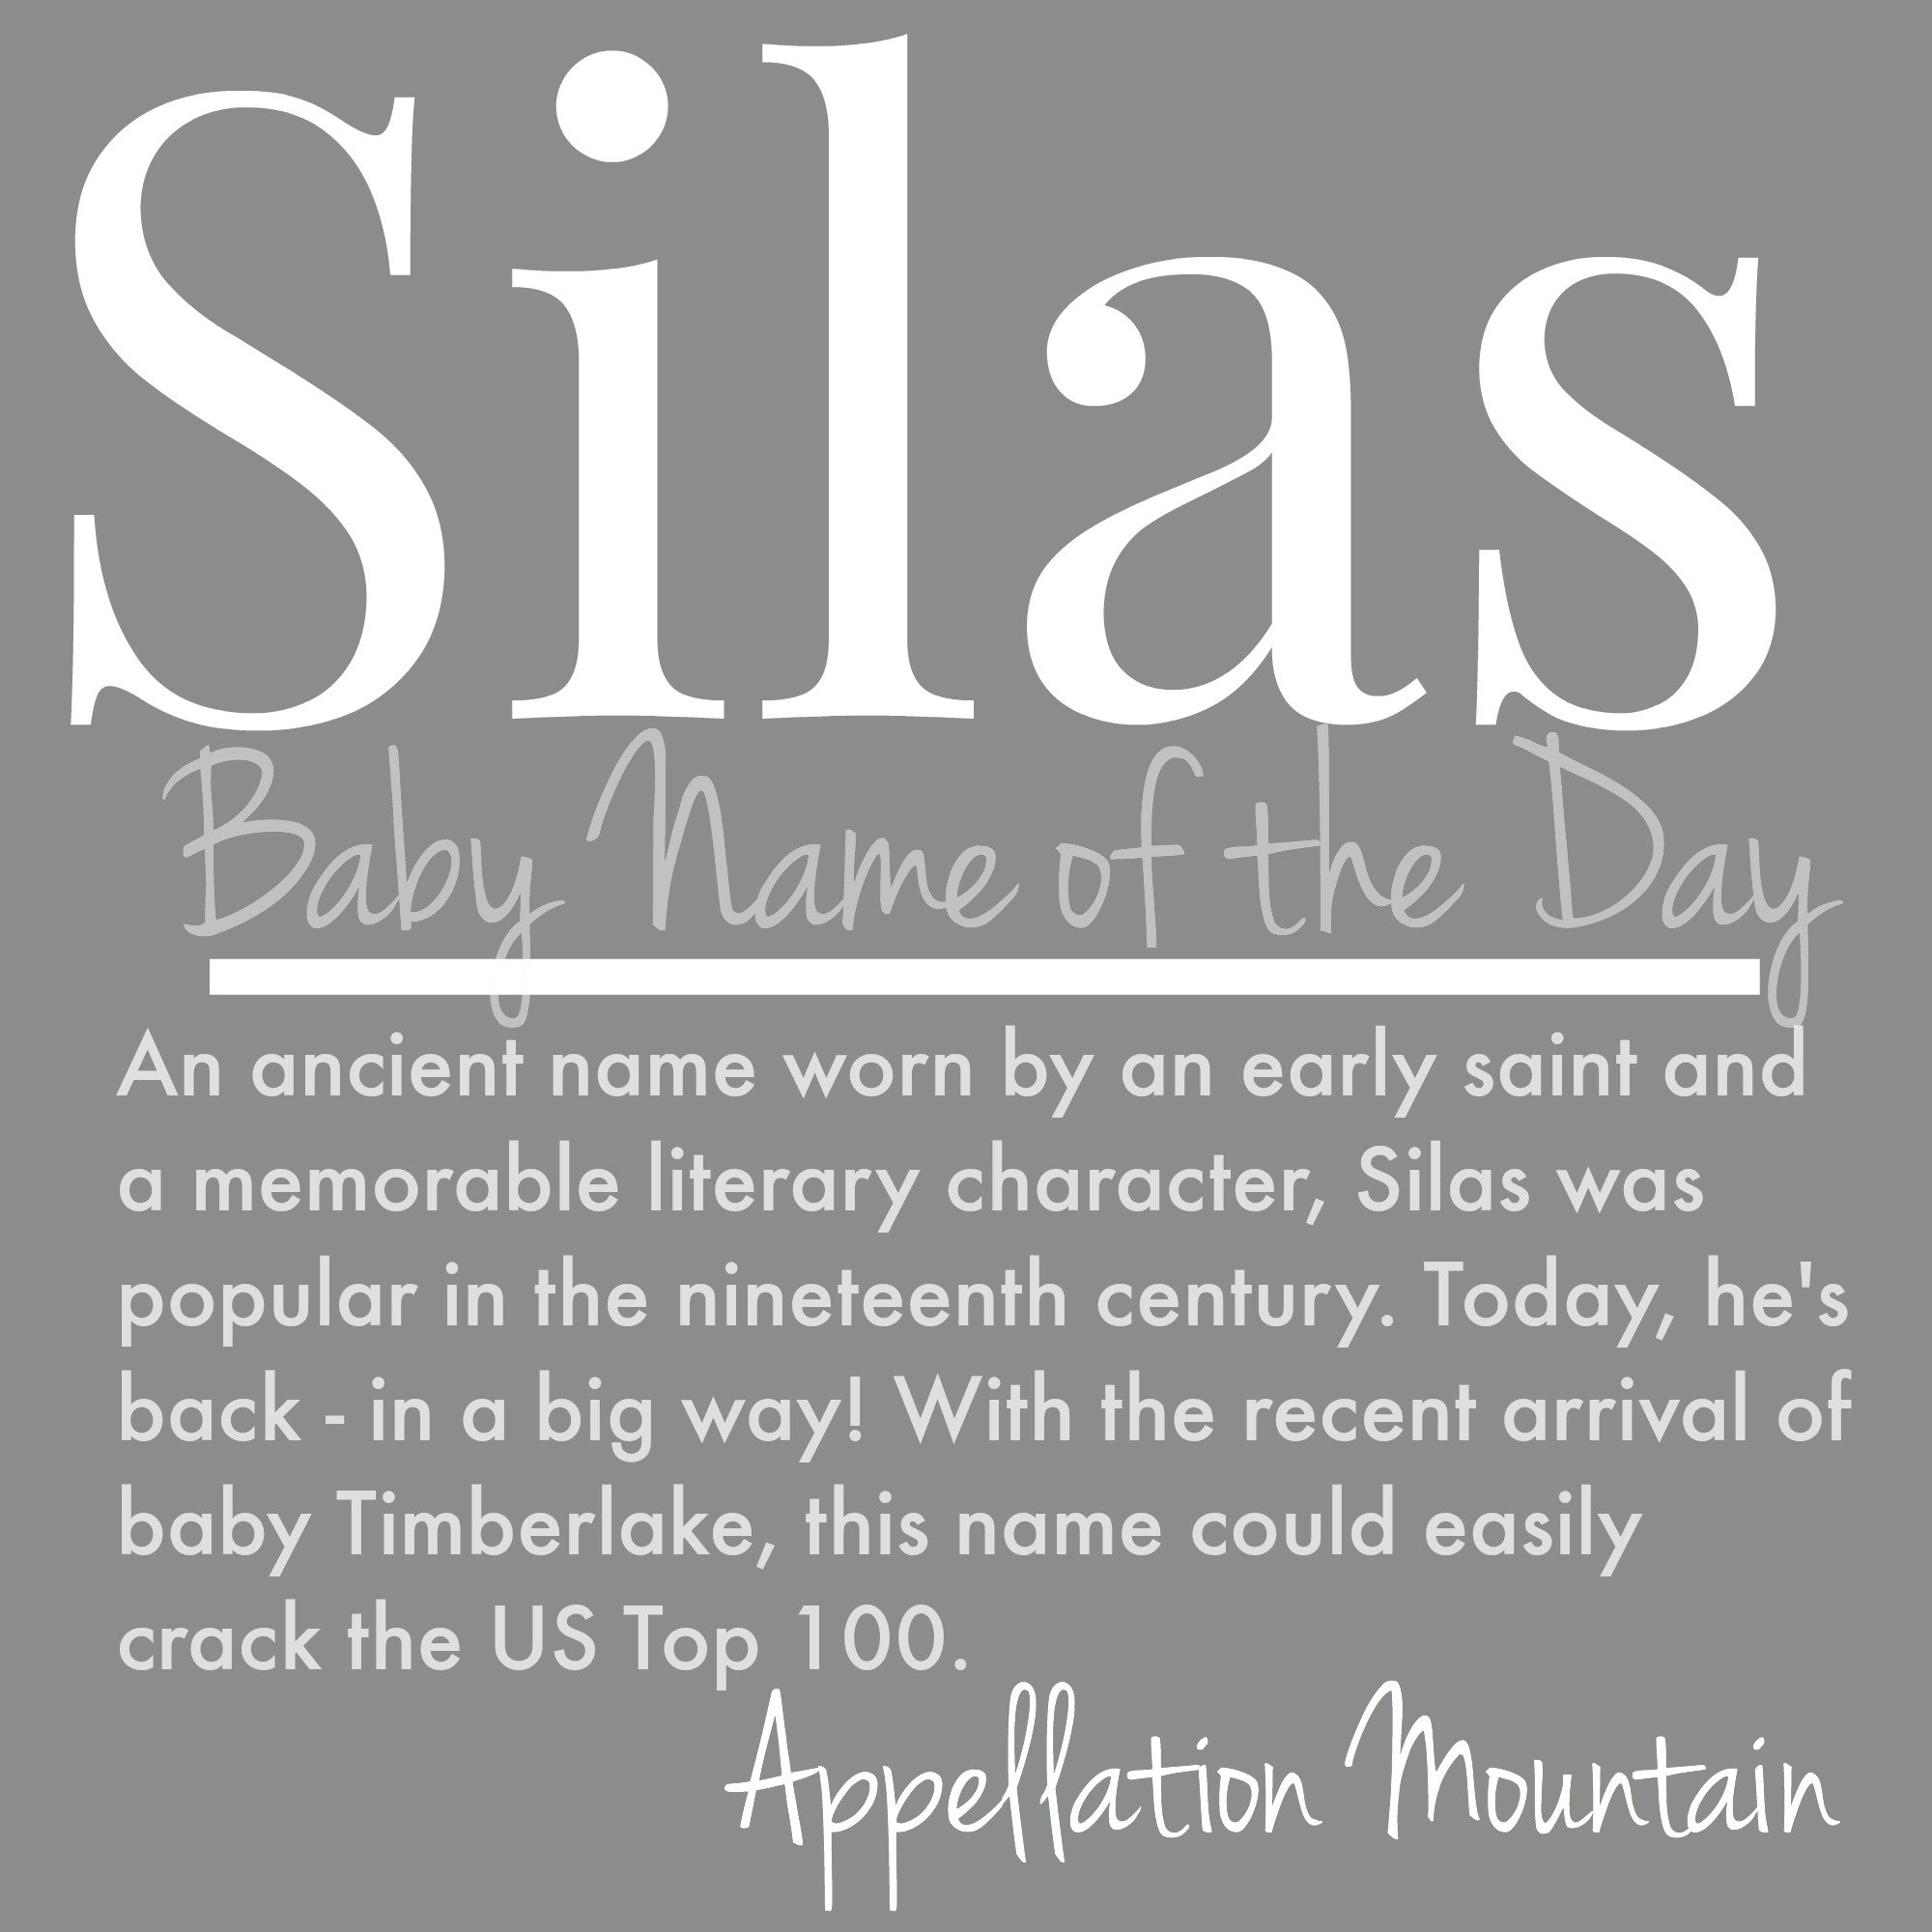 Silas: Baby Name of the Day - Appellation Mountain